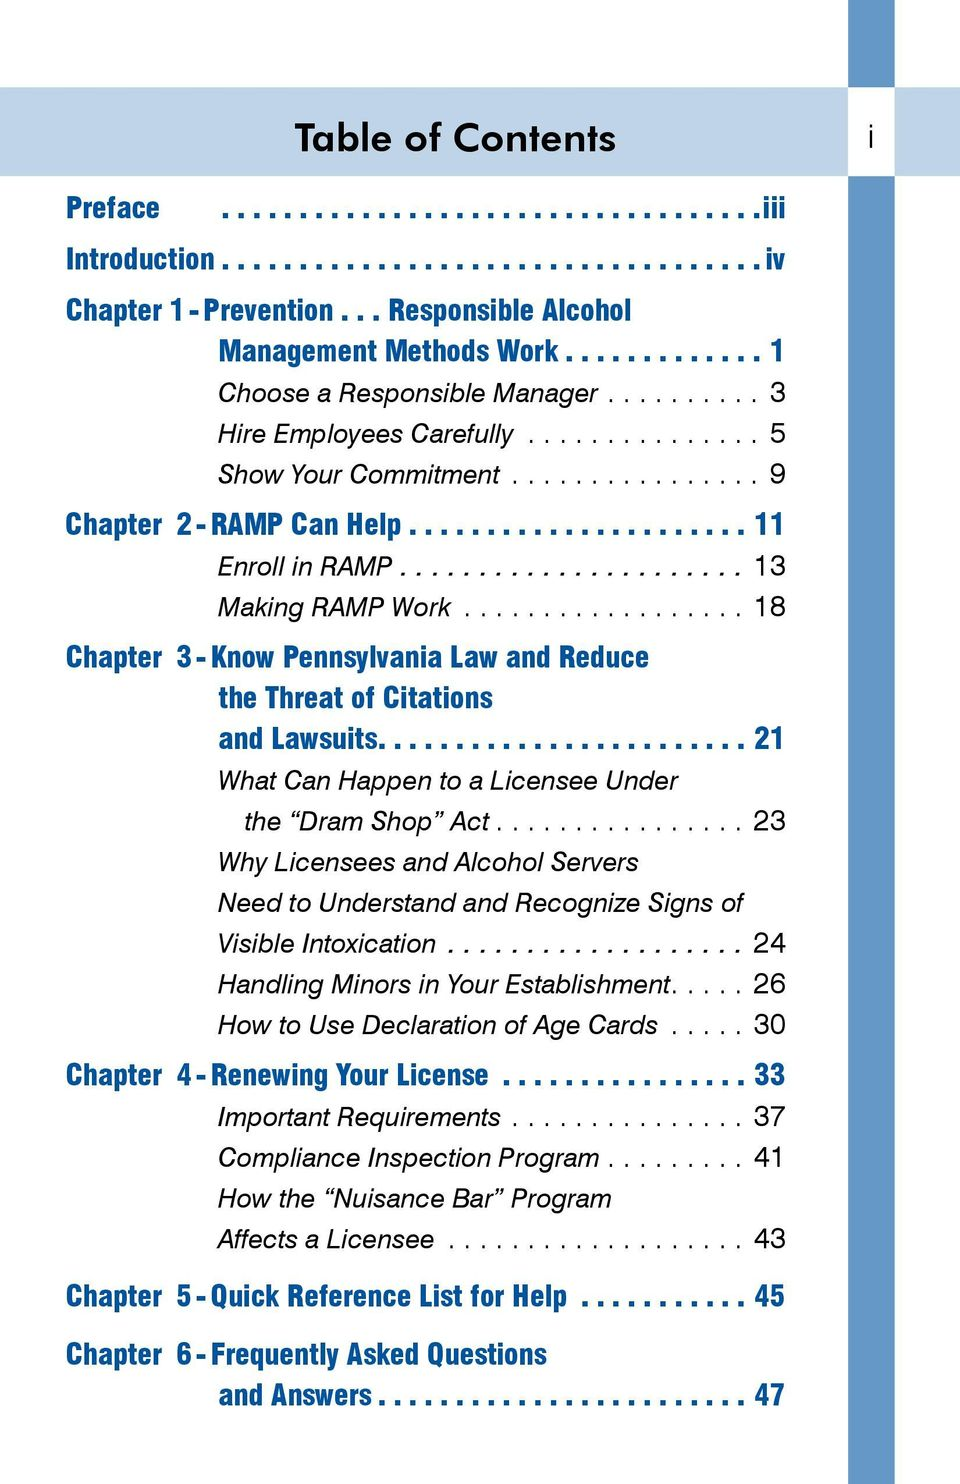 ...21 What Can Happen to a Licensee Under the Dram Shop Act....23 Why Licensees and Alcohol Servers Need to Understand and Recognize Signs of Visible Intoxication.